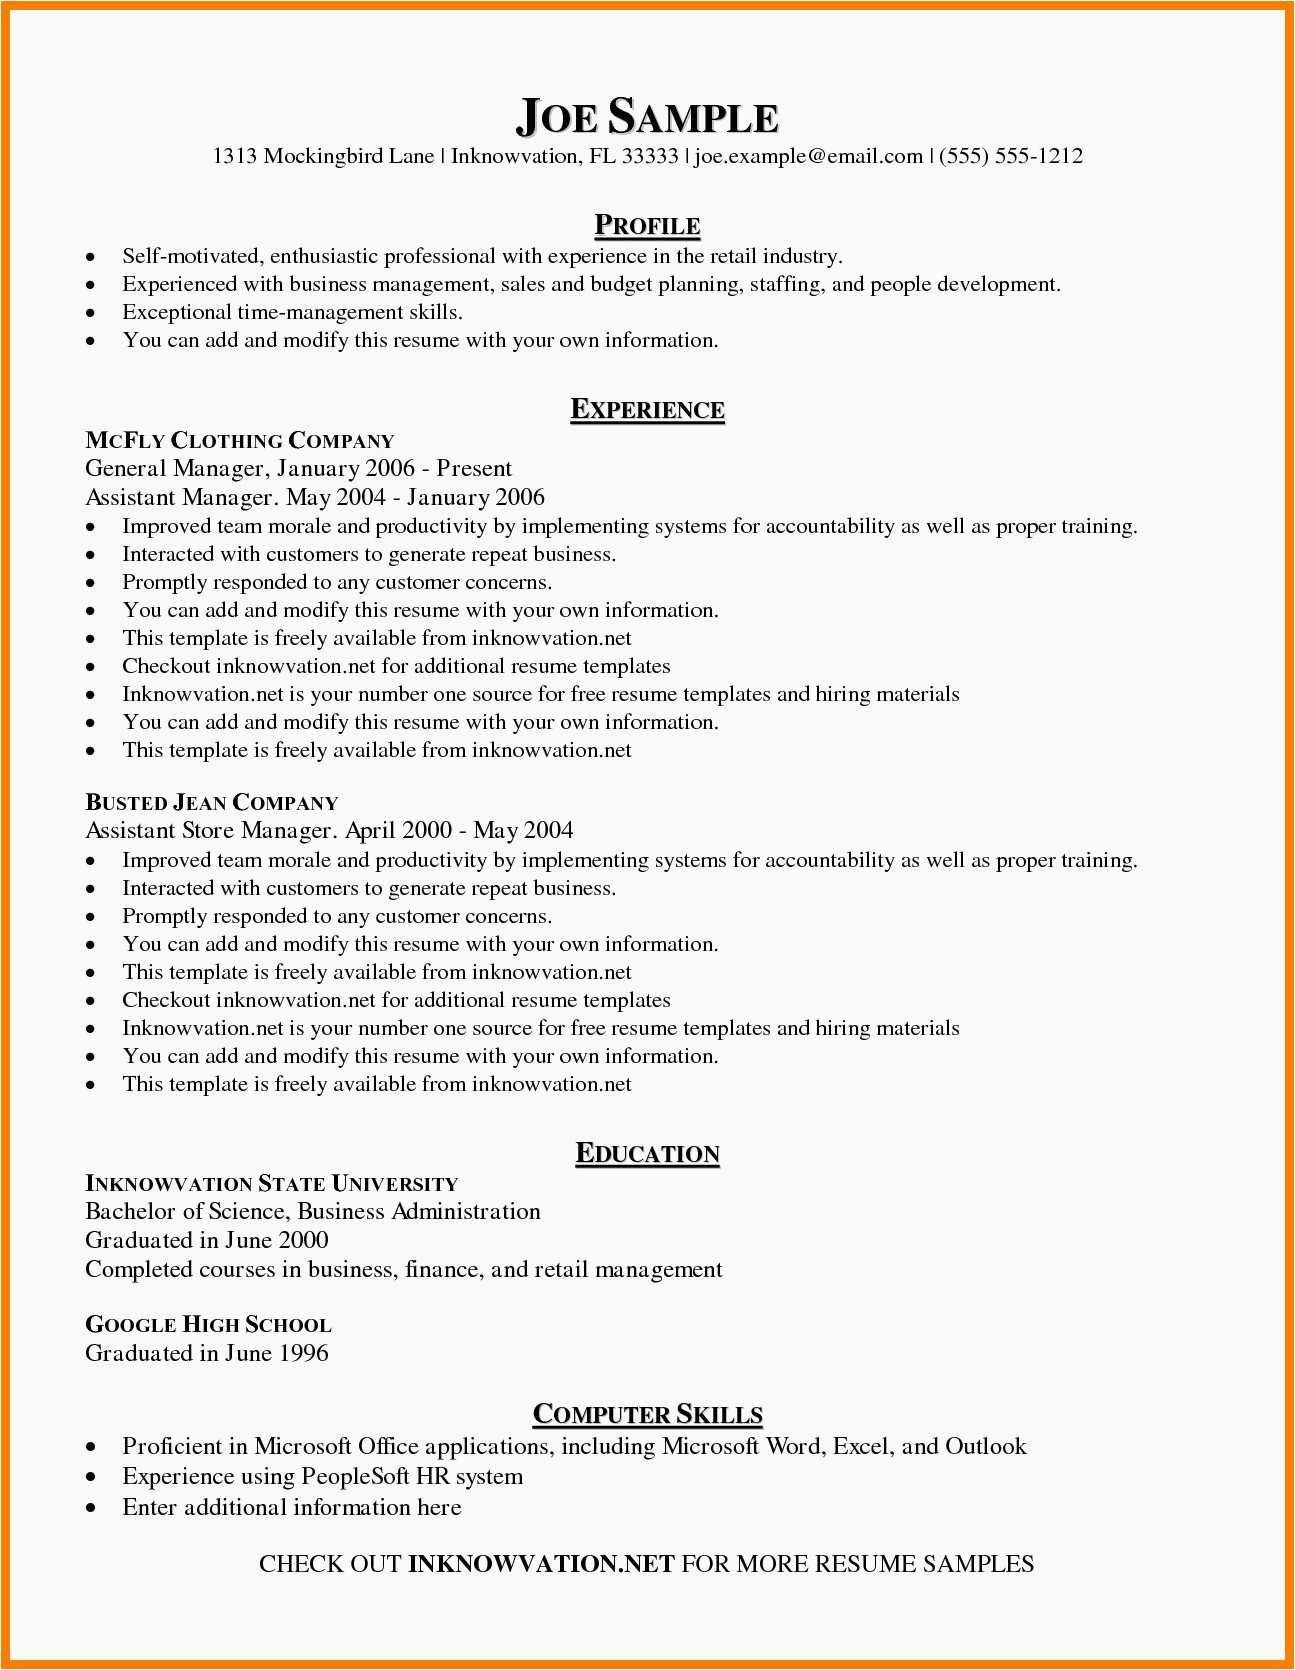 Where To Find A Resume Examples Office Wikiresume Com In 2020 Basic Resume Examples Resume Examples Basic Resume